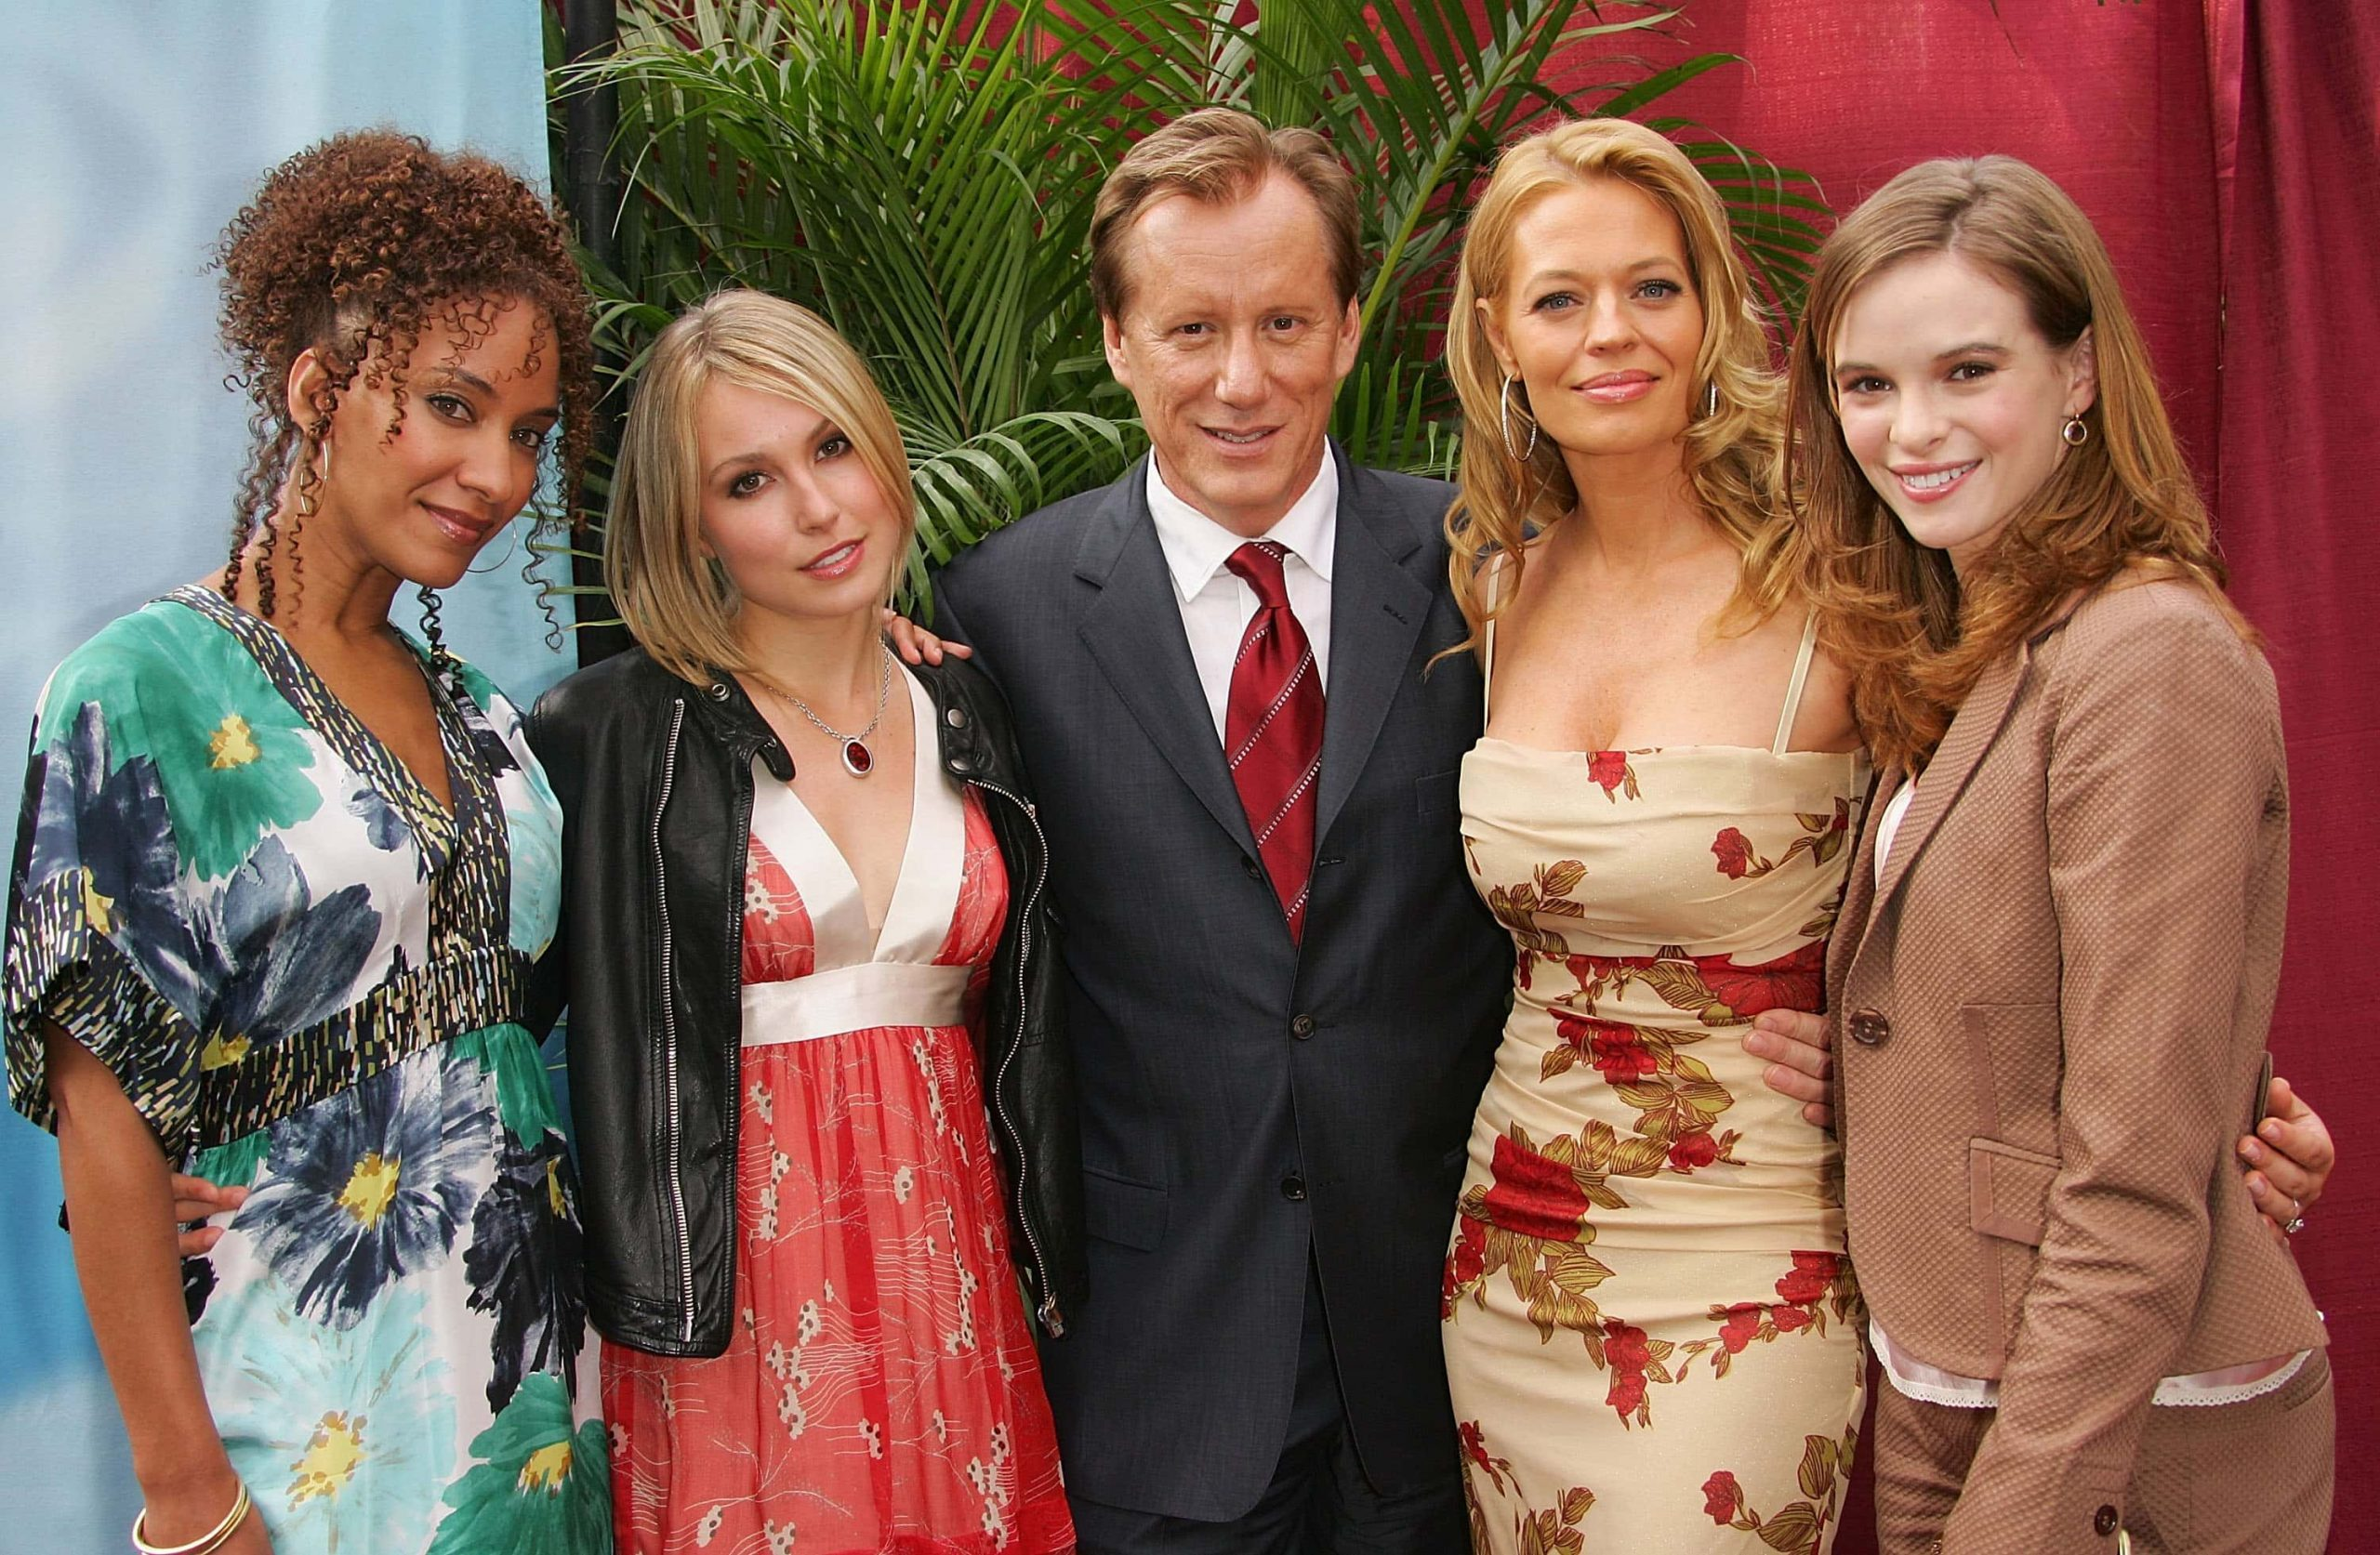 Sophina Brown, Sarah Carter, James Woods, Jeri Ryan and Danielle Panabaker attend the CBS Upfront Presentation at Tavern On The Green May 17, 2006, in New York City